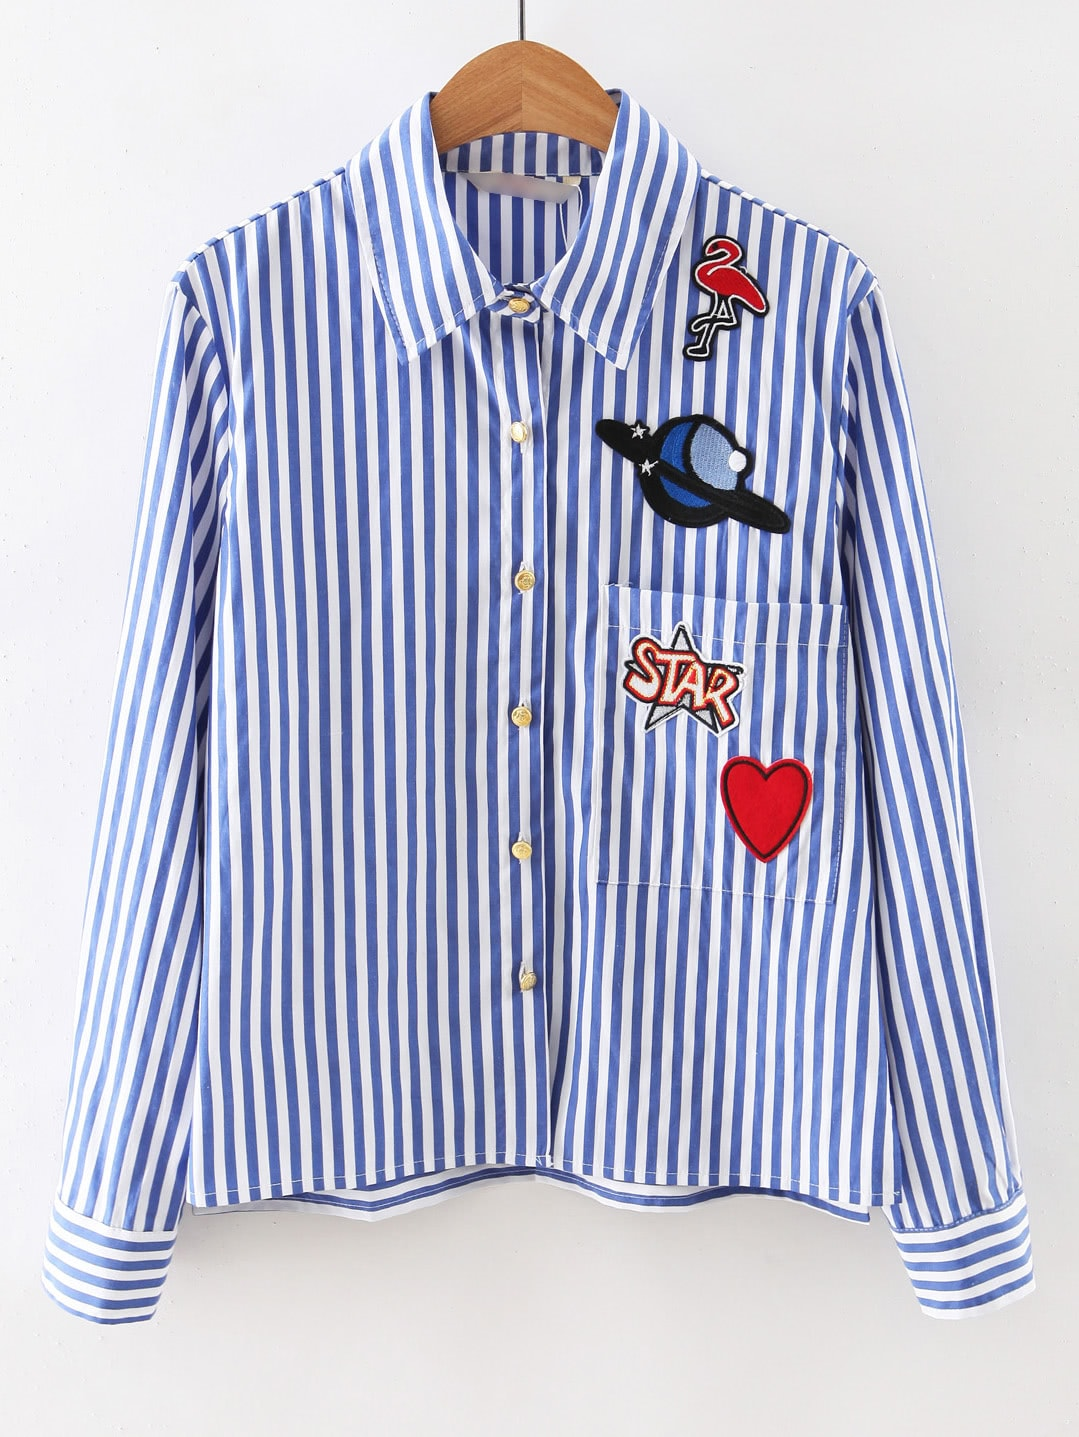 Contrast Striped Embroidered Patches Shirt back pleat embroidered striped shirt